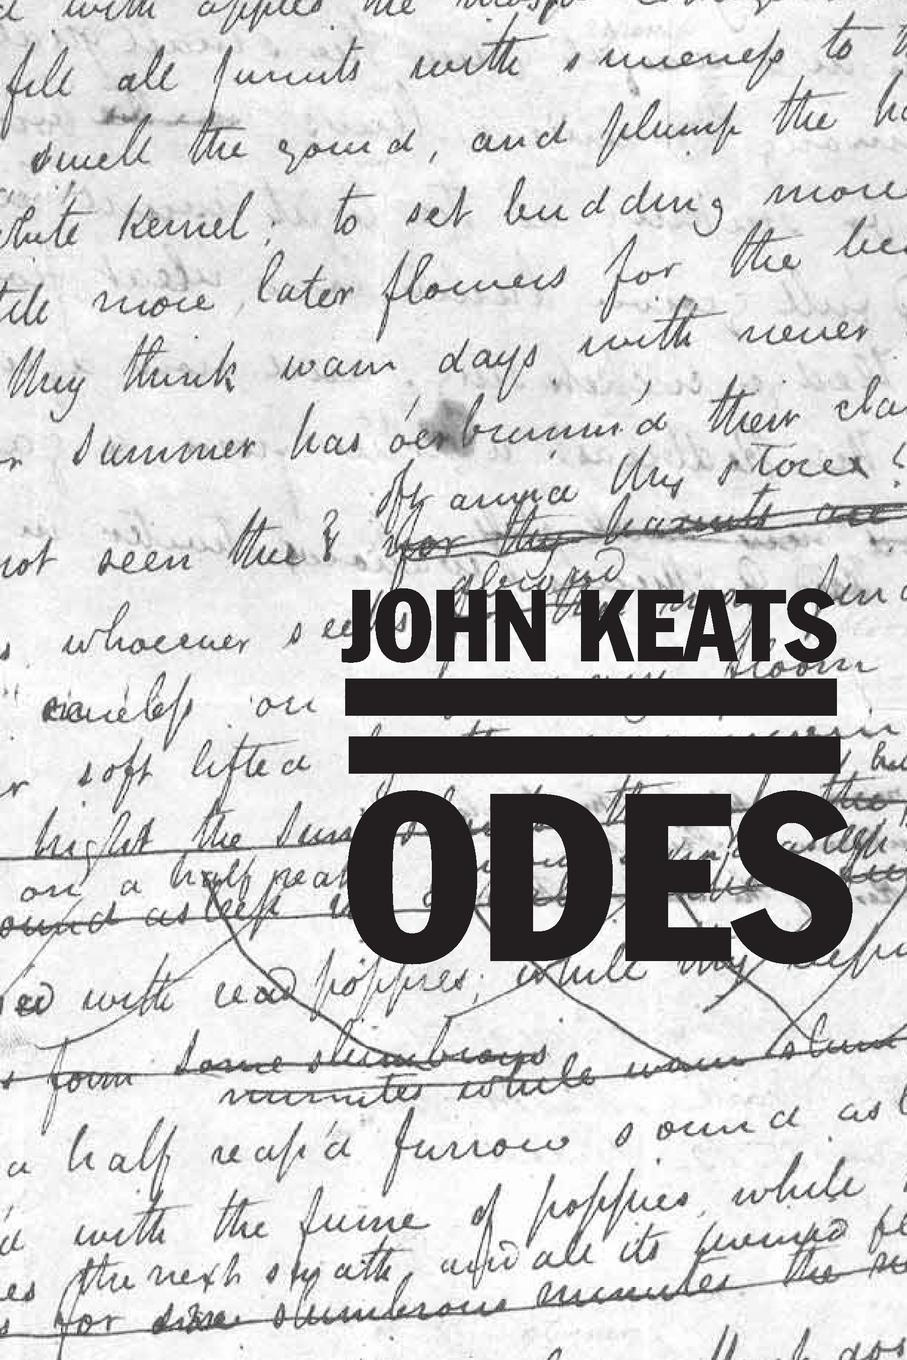 John Keats Odes anatomy of melancholy and other poems